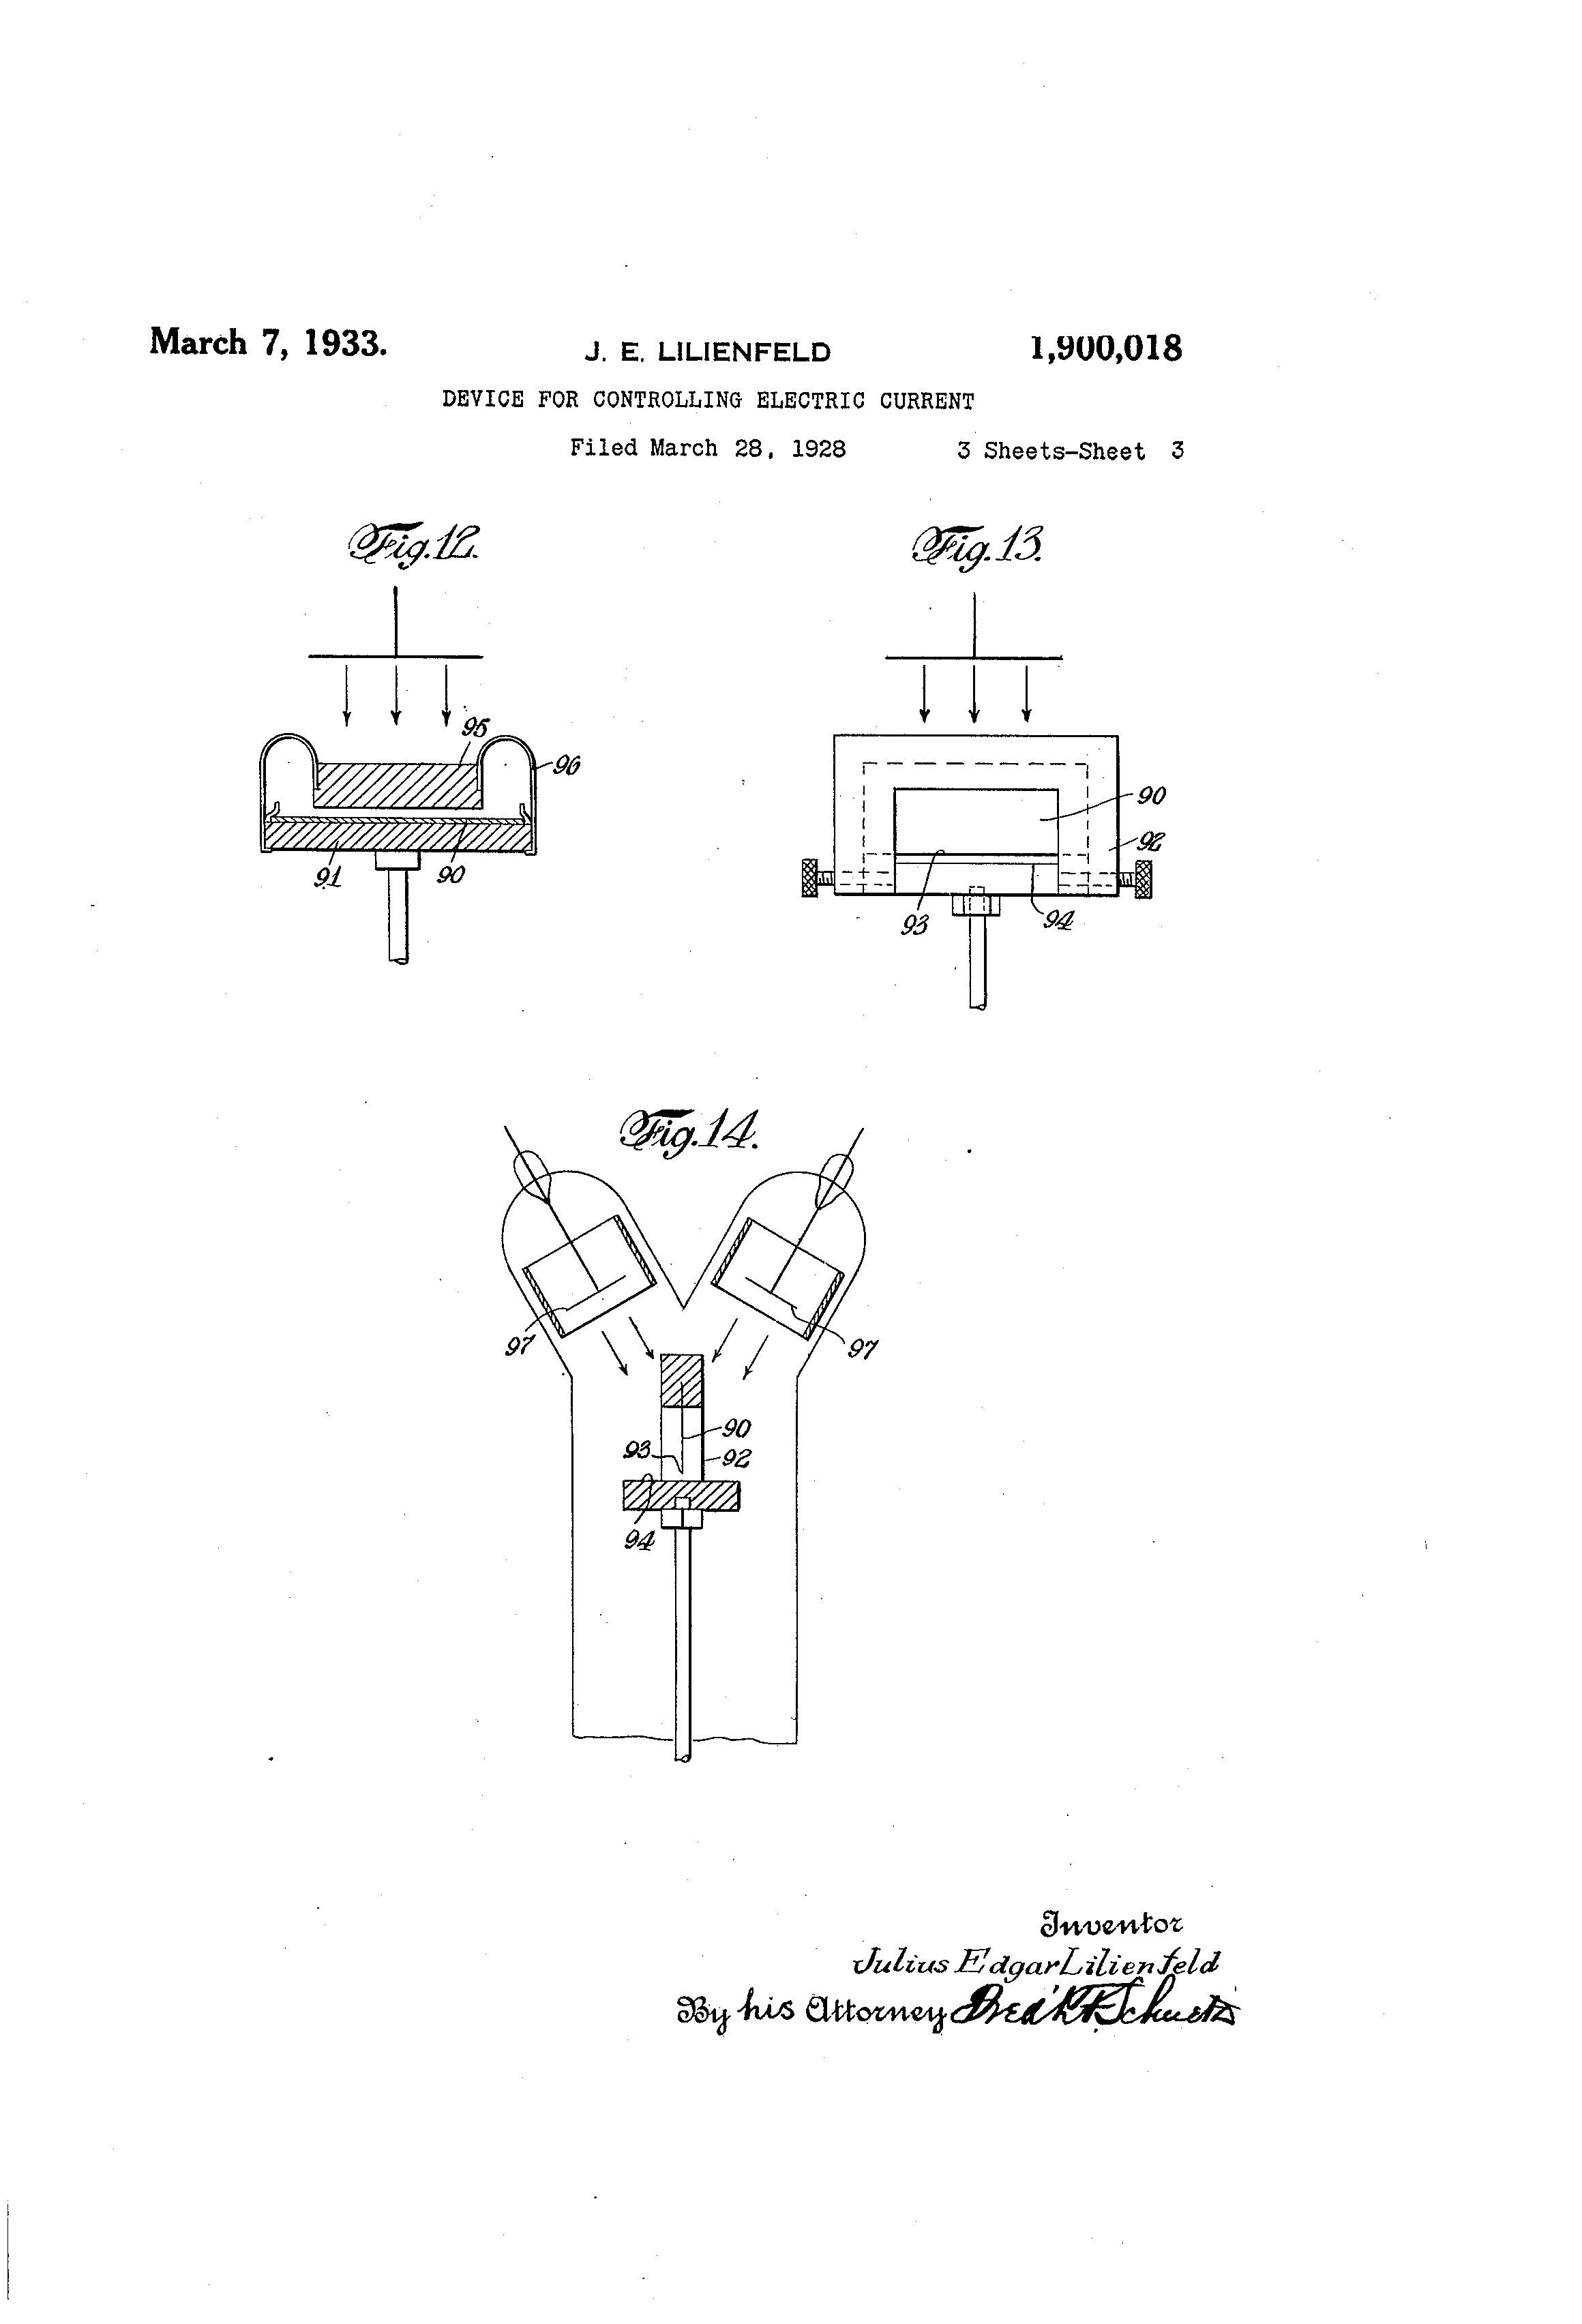 US 1900018 A - Device For Controlling Electric Current - The Lens ...